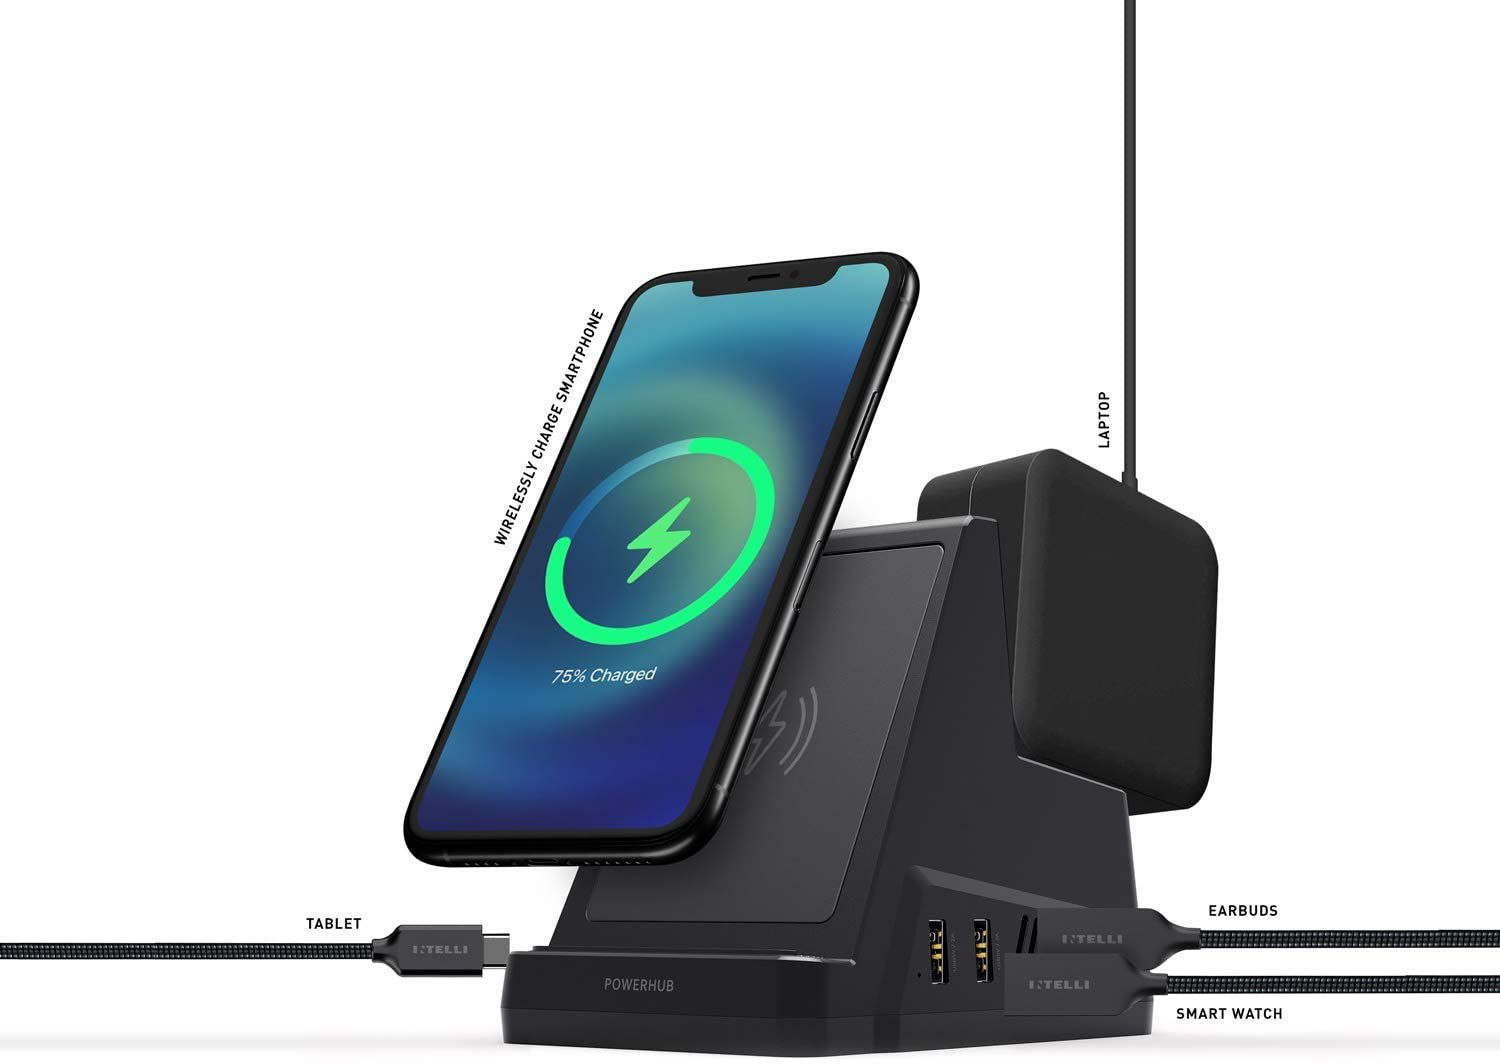 The Intelli Powerhub can charge your devices.